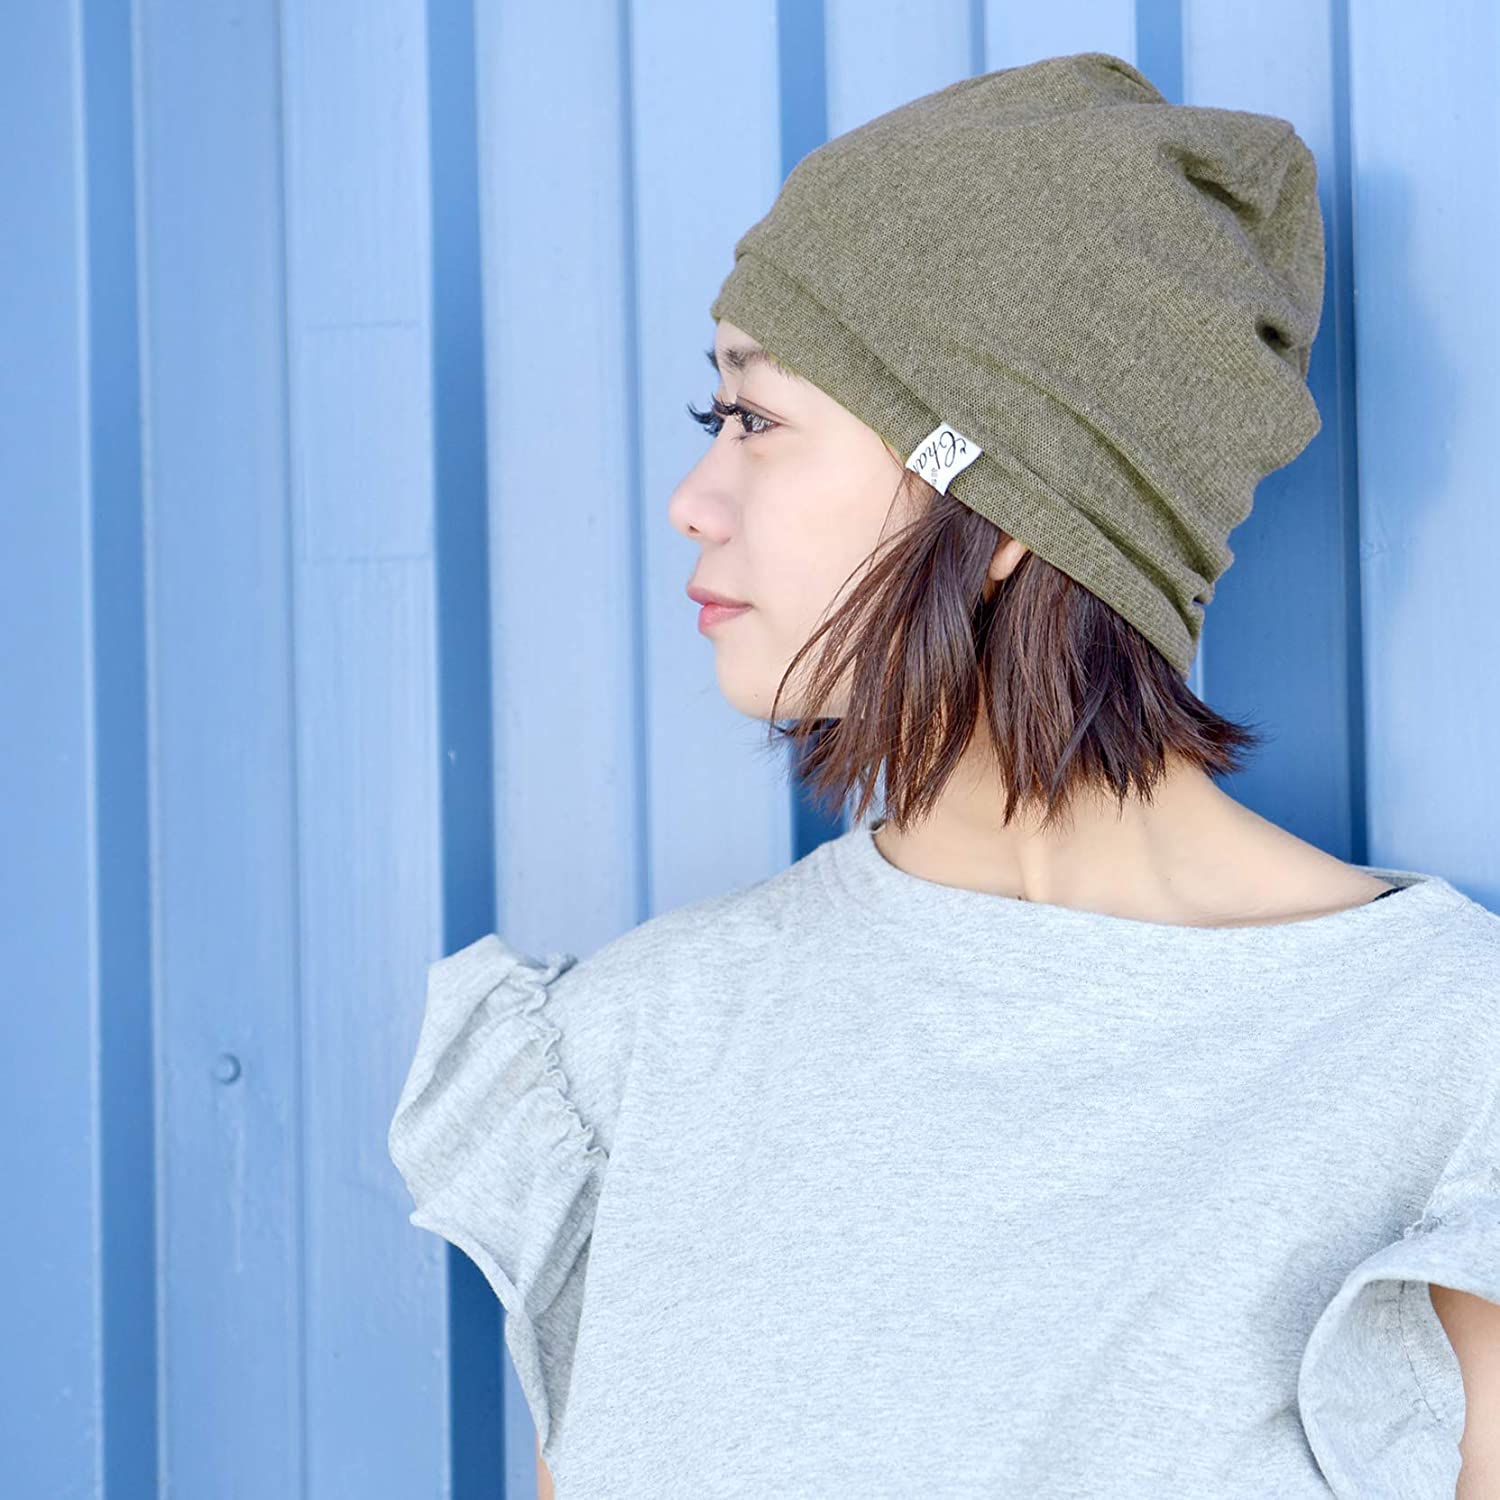 Summer Beanie Hat Thin Slouchy Baggy Cooling Light Fashion Unisex CHARM Casualbox